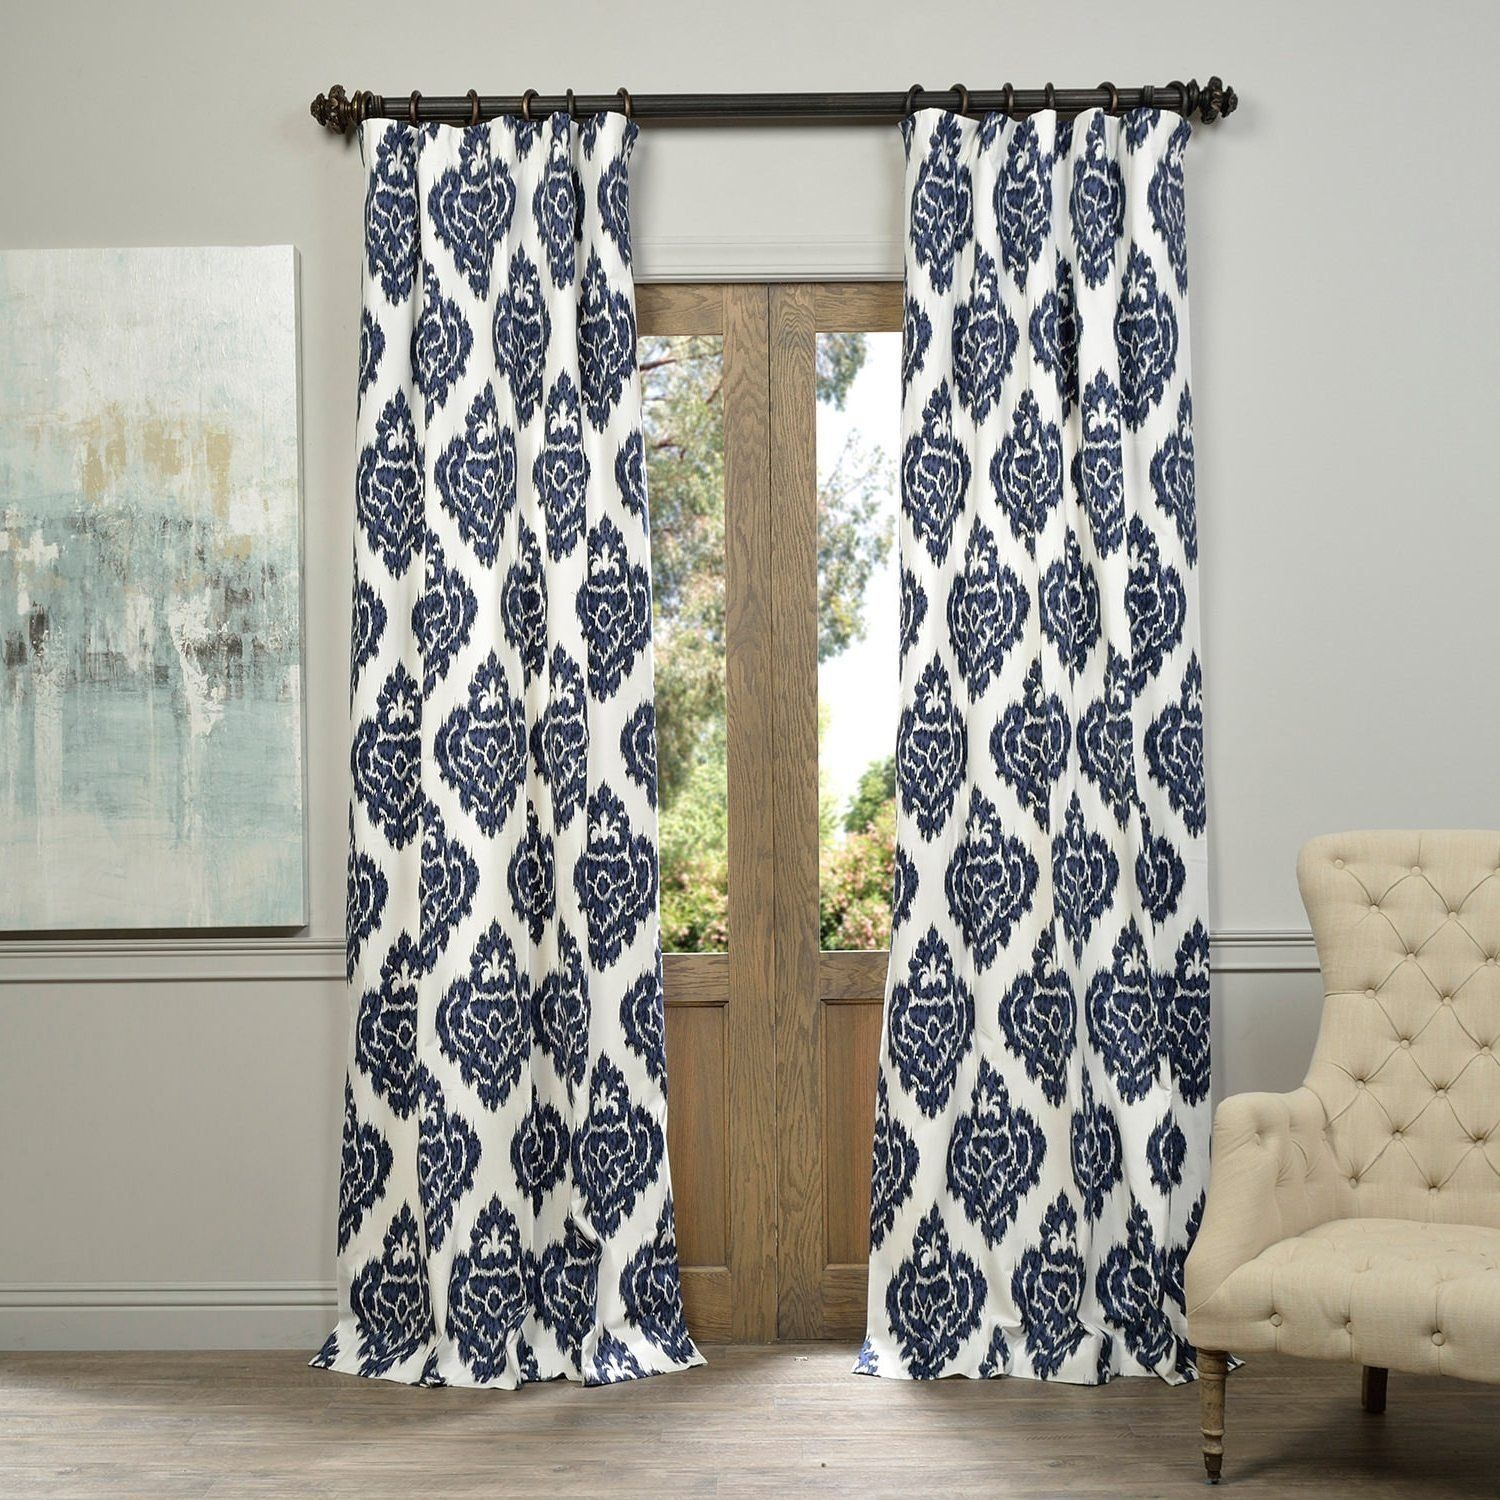 1 Piece 96 Inch Blue Solid Color Ikat Printed Cotton Girls Inside Ikat Blue Printed Cotton Curtain Panels (View 1 of 20)